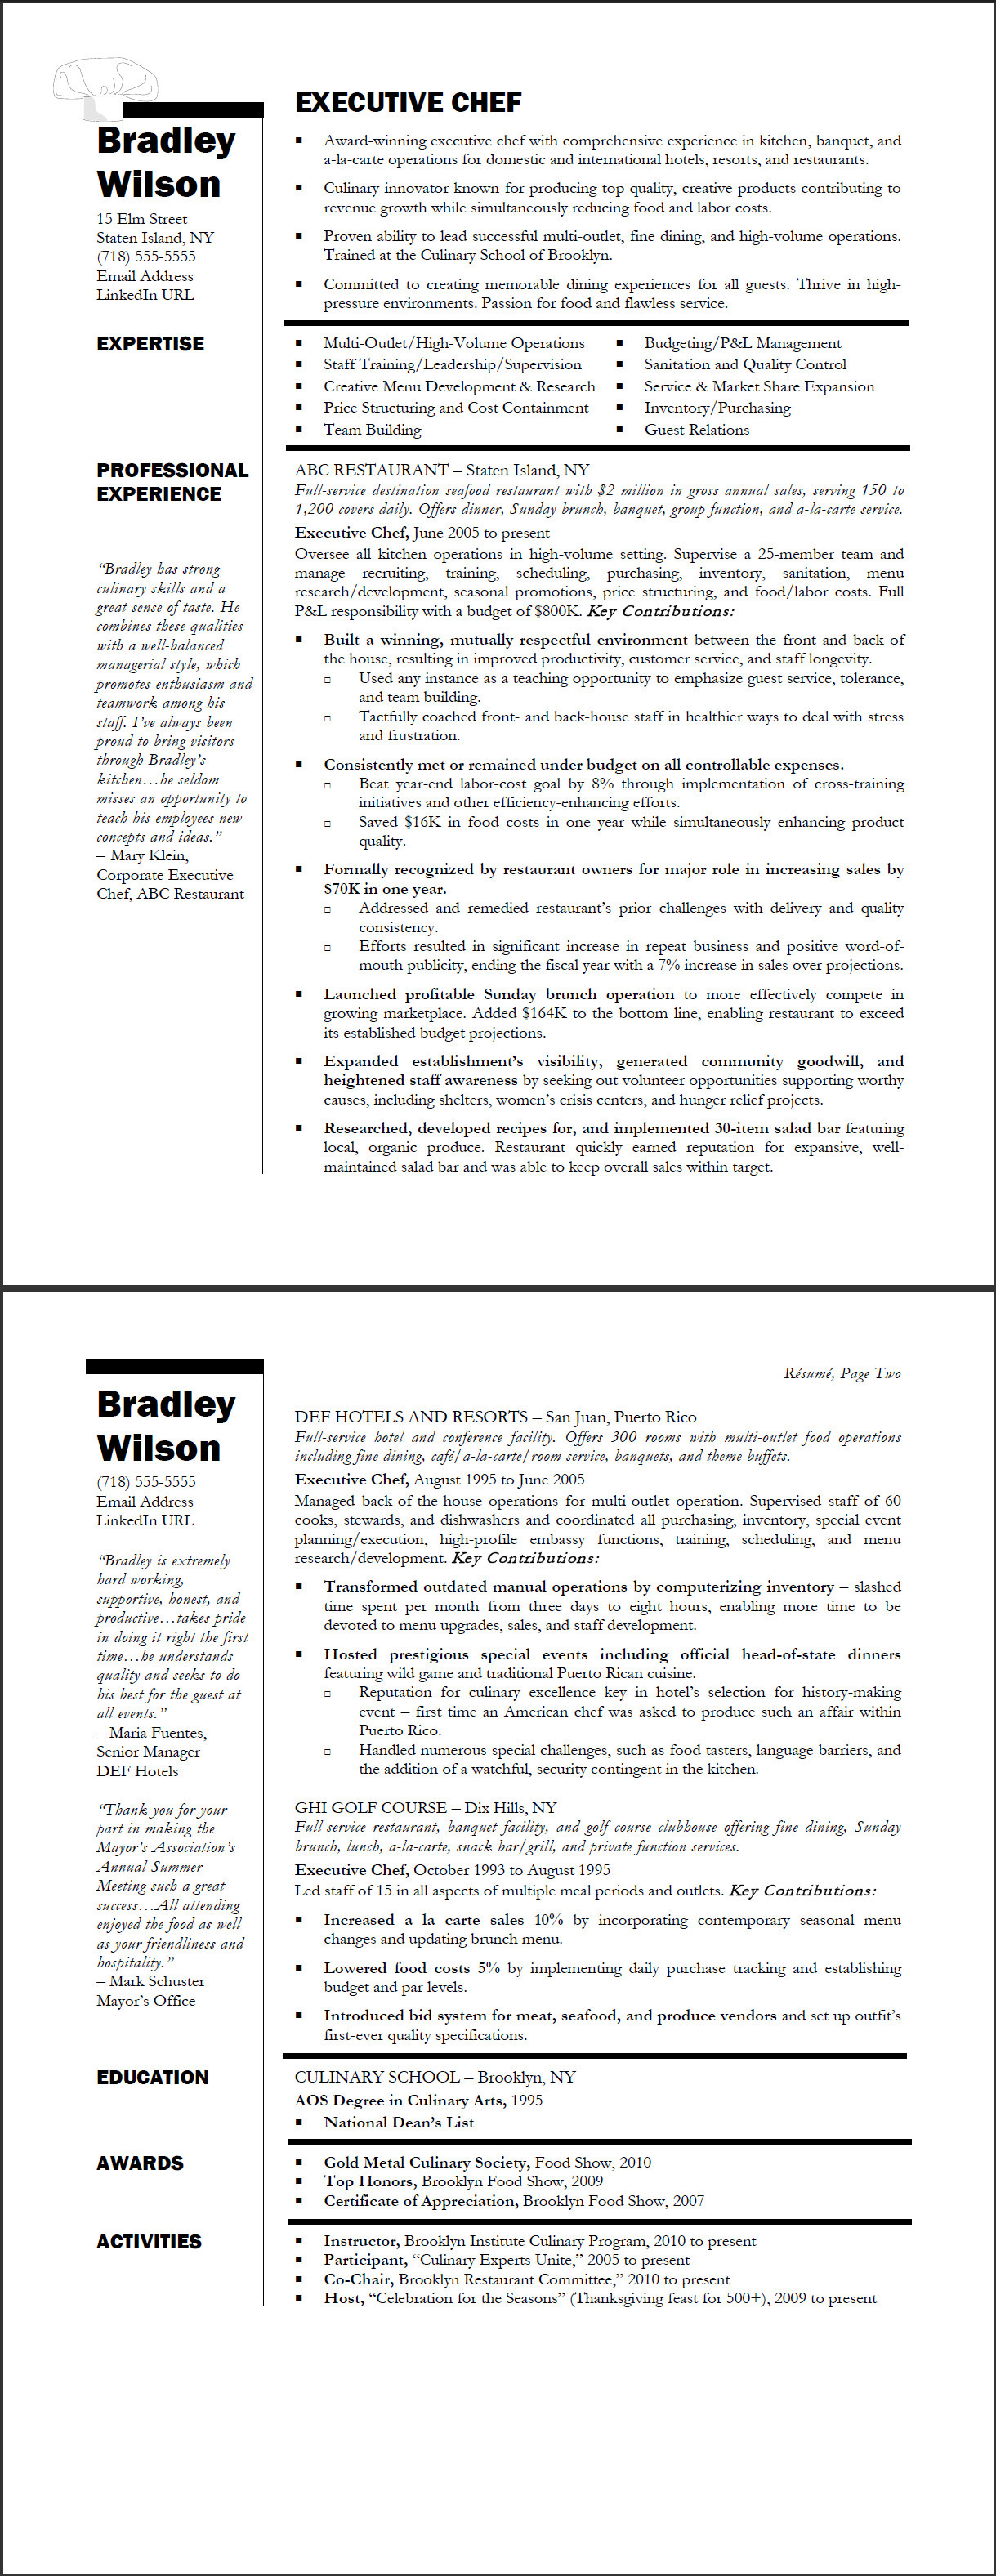 executive chef sample resume - Sample Picture Of A Resume